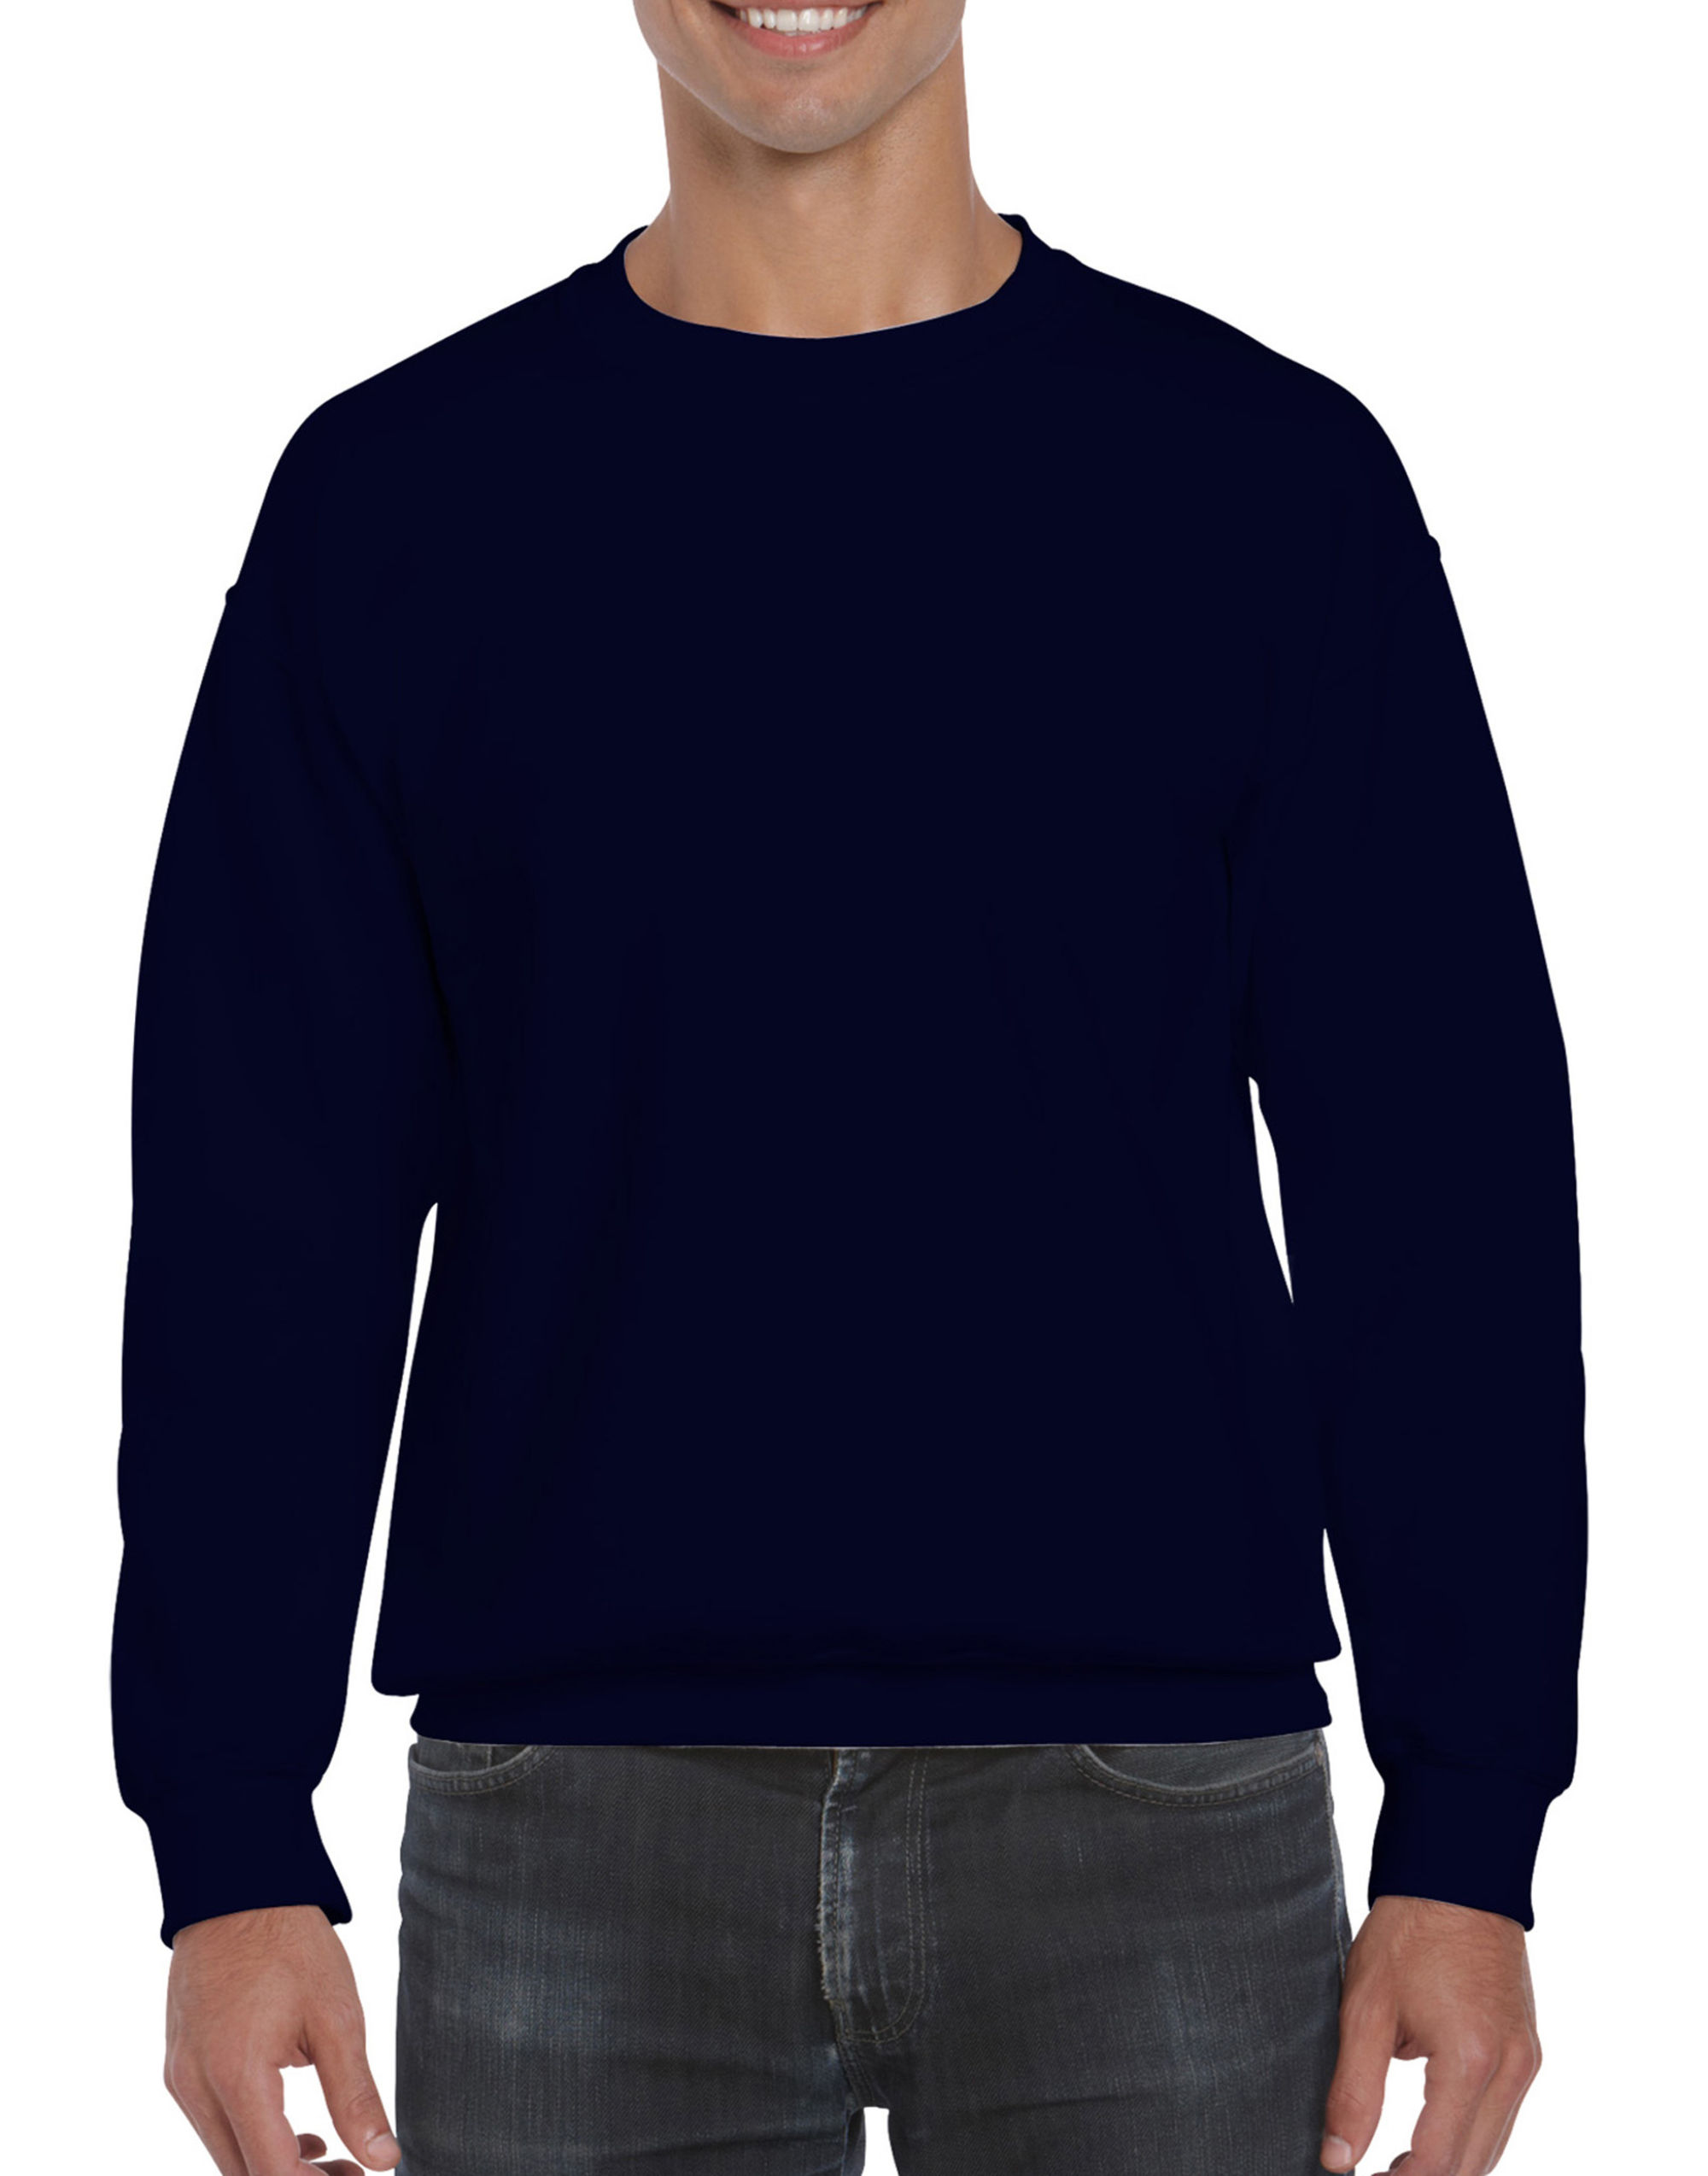 DryBlend Adult Set-In Sweatshirt